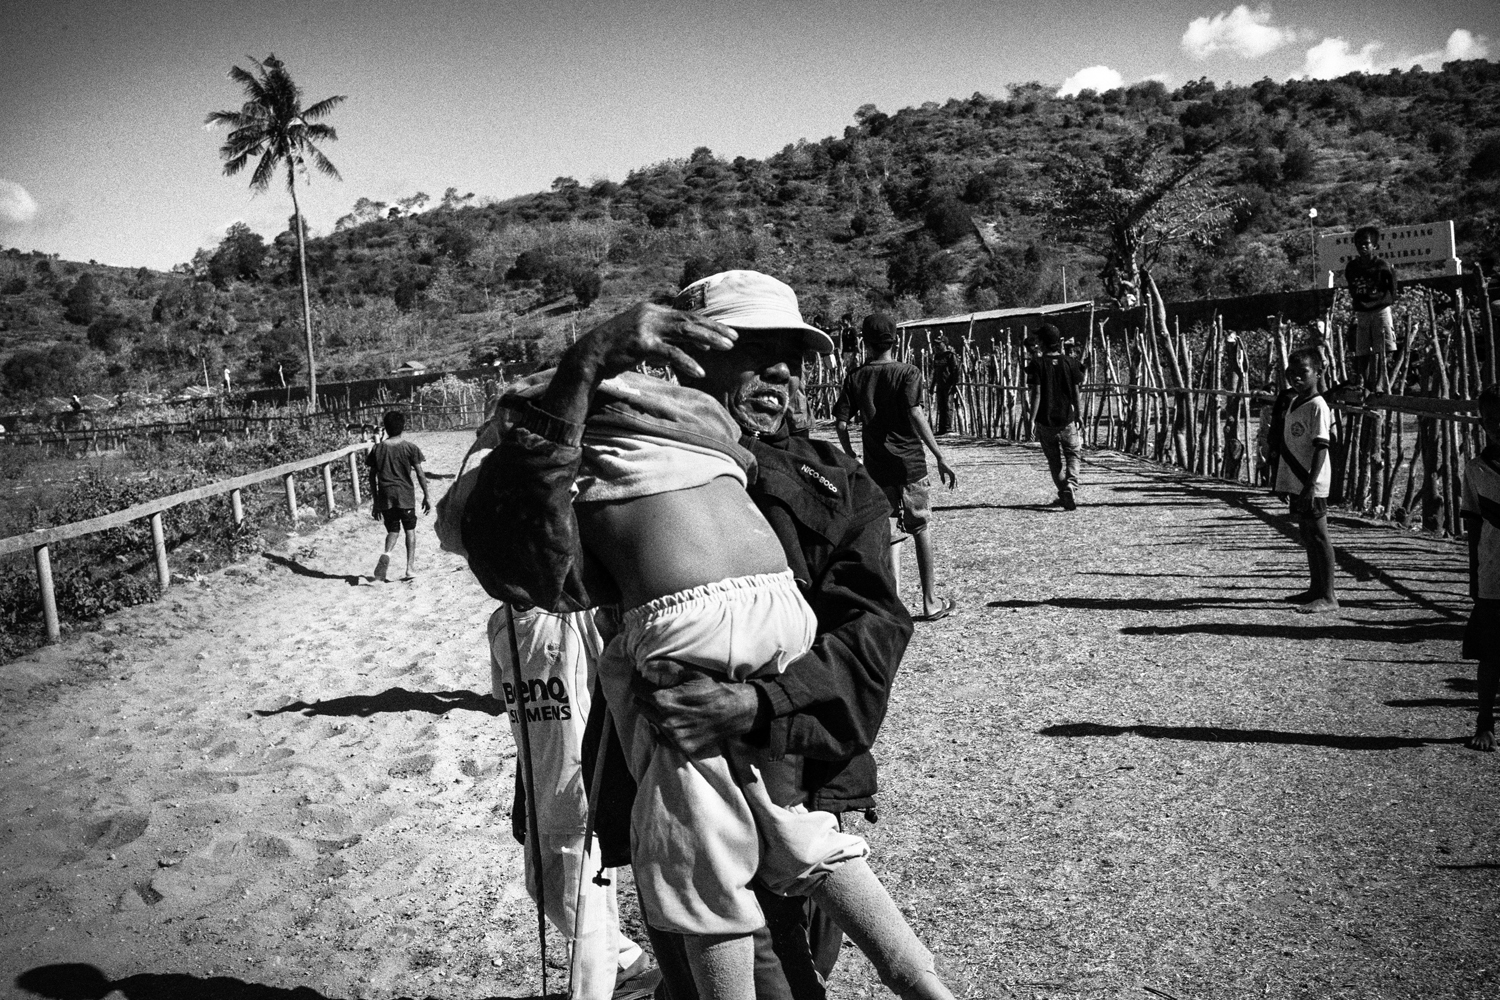 July 14, 2012. A jockey is held by his father after a race.